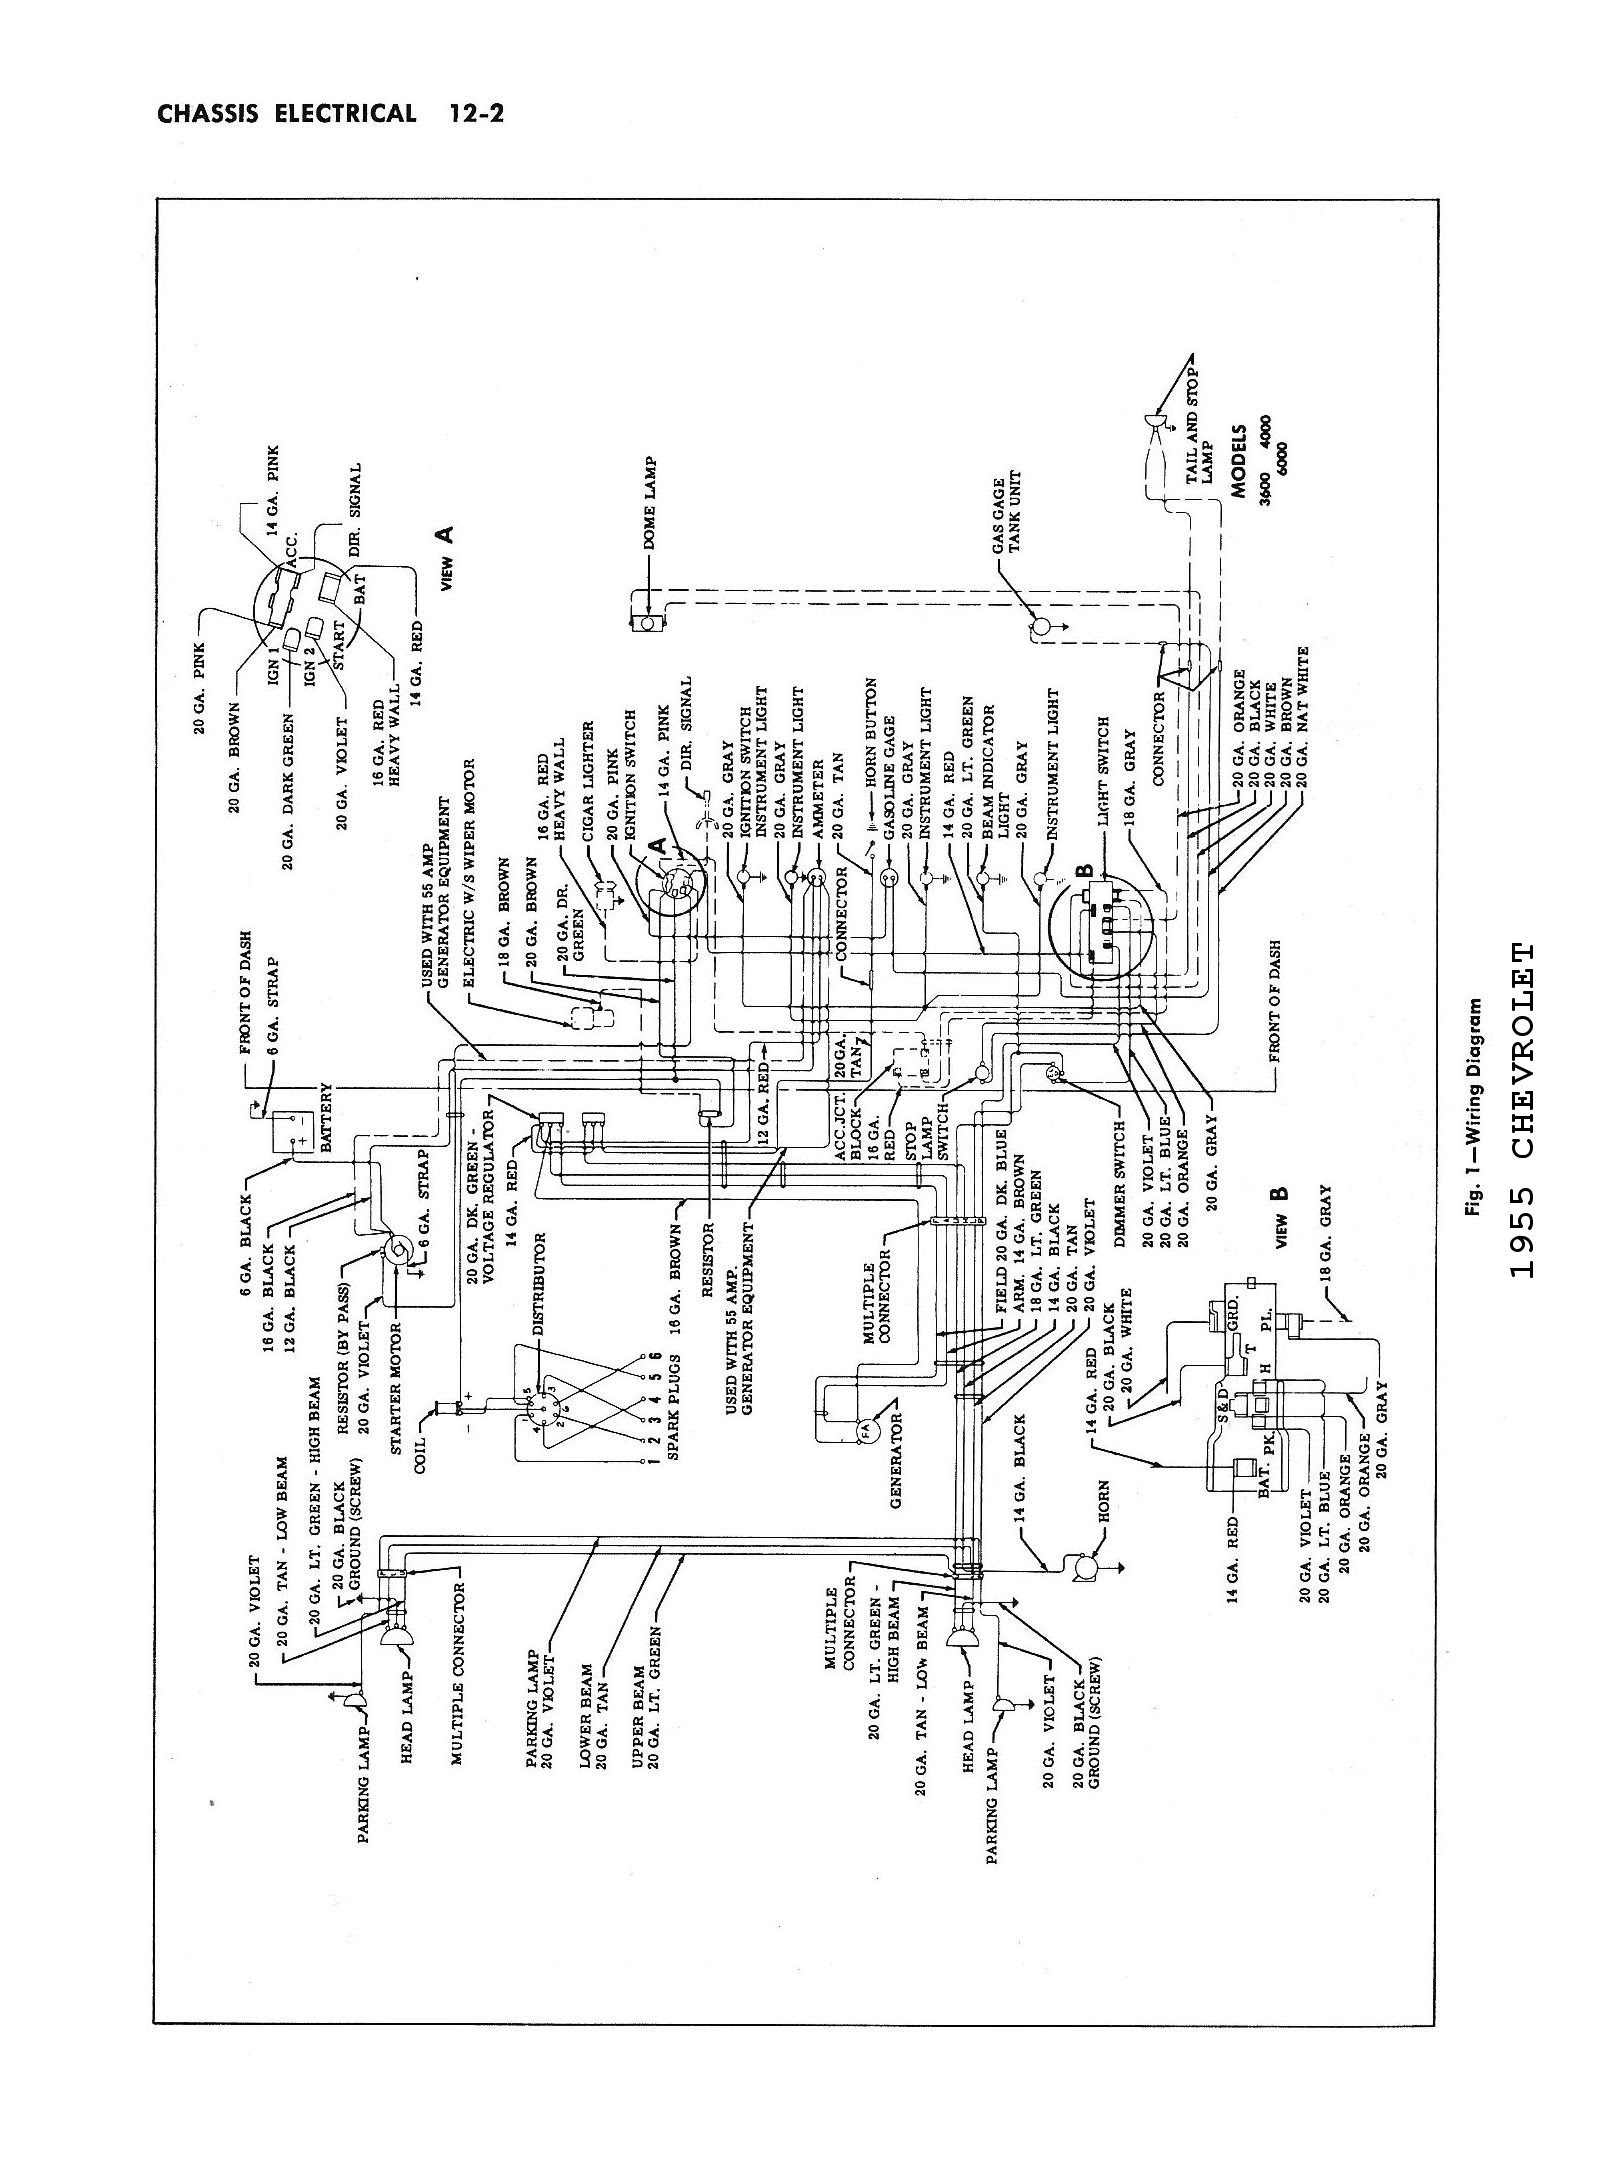 1996 Chevy 1500 Wiring Diagram Pdf 2006 Chevy Colorado Fuse Box Diagram Ezgobattery Yenpancane Jeanjaures37 Fr